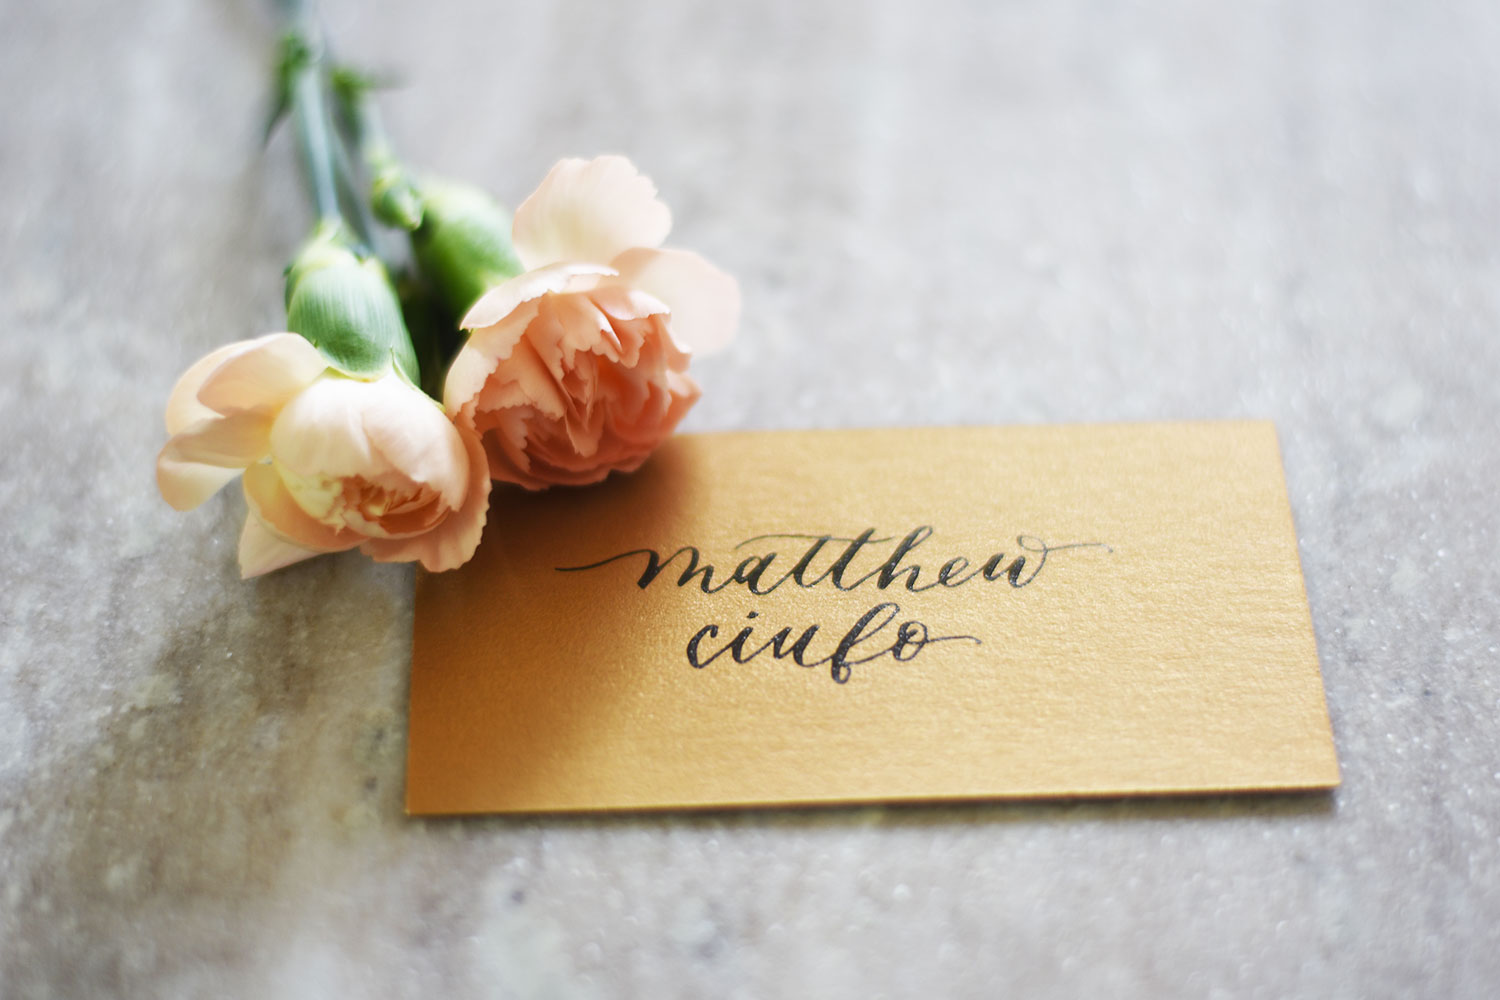 gold-black-wedding-calligraphy-place-cards-tahoe-reno-weddings.jpg